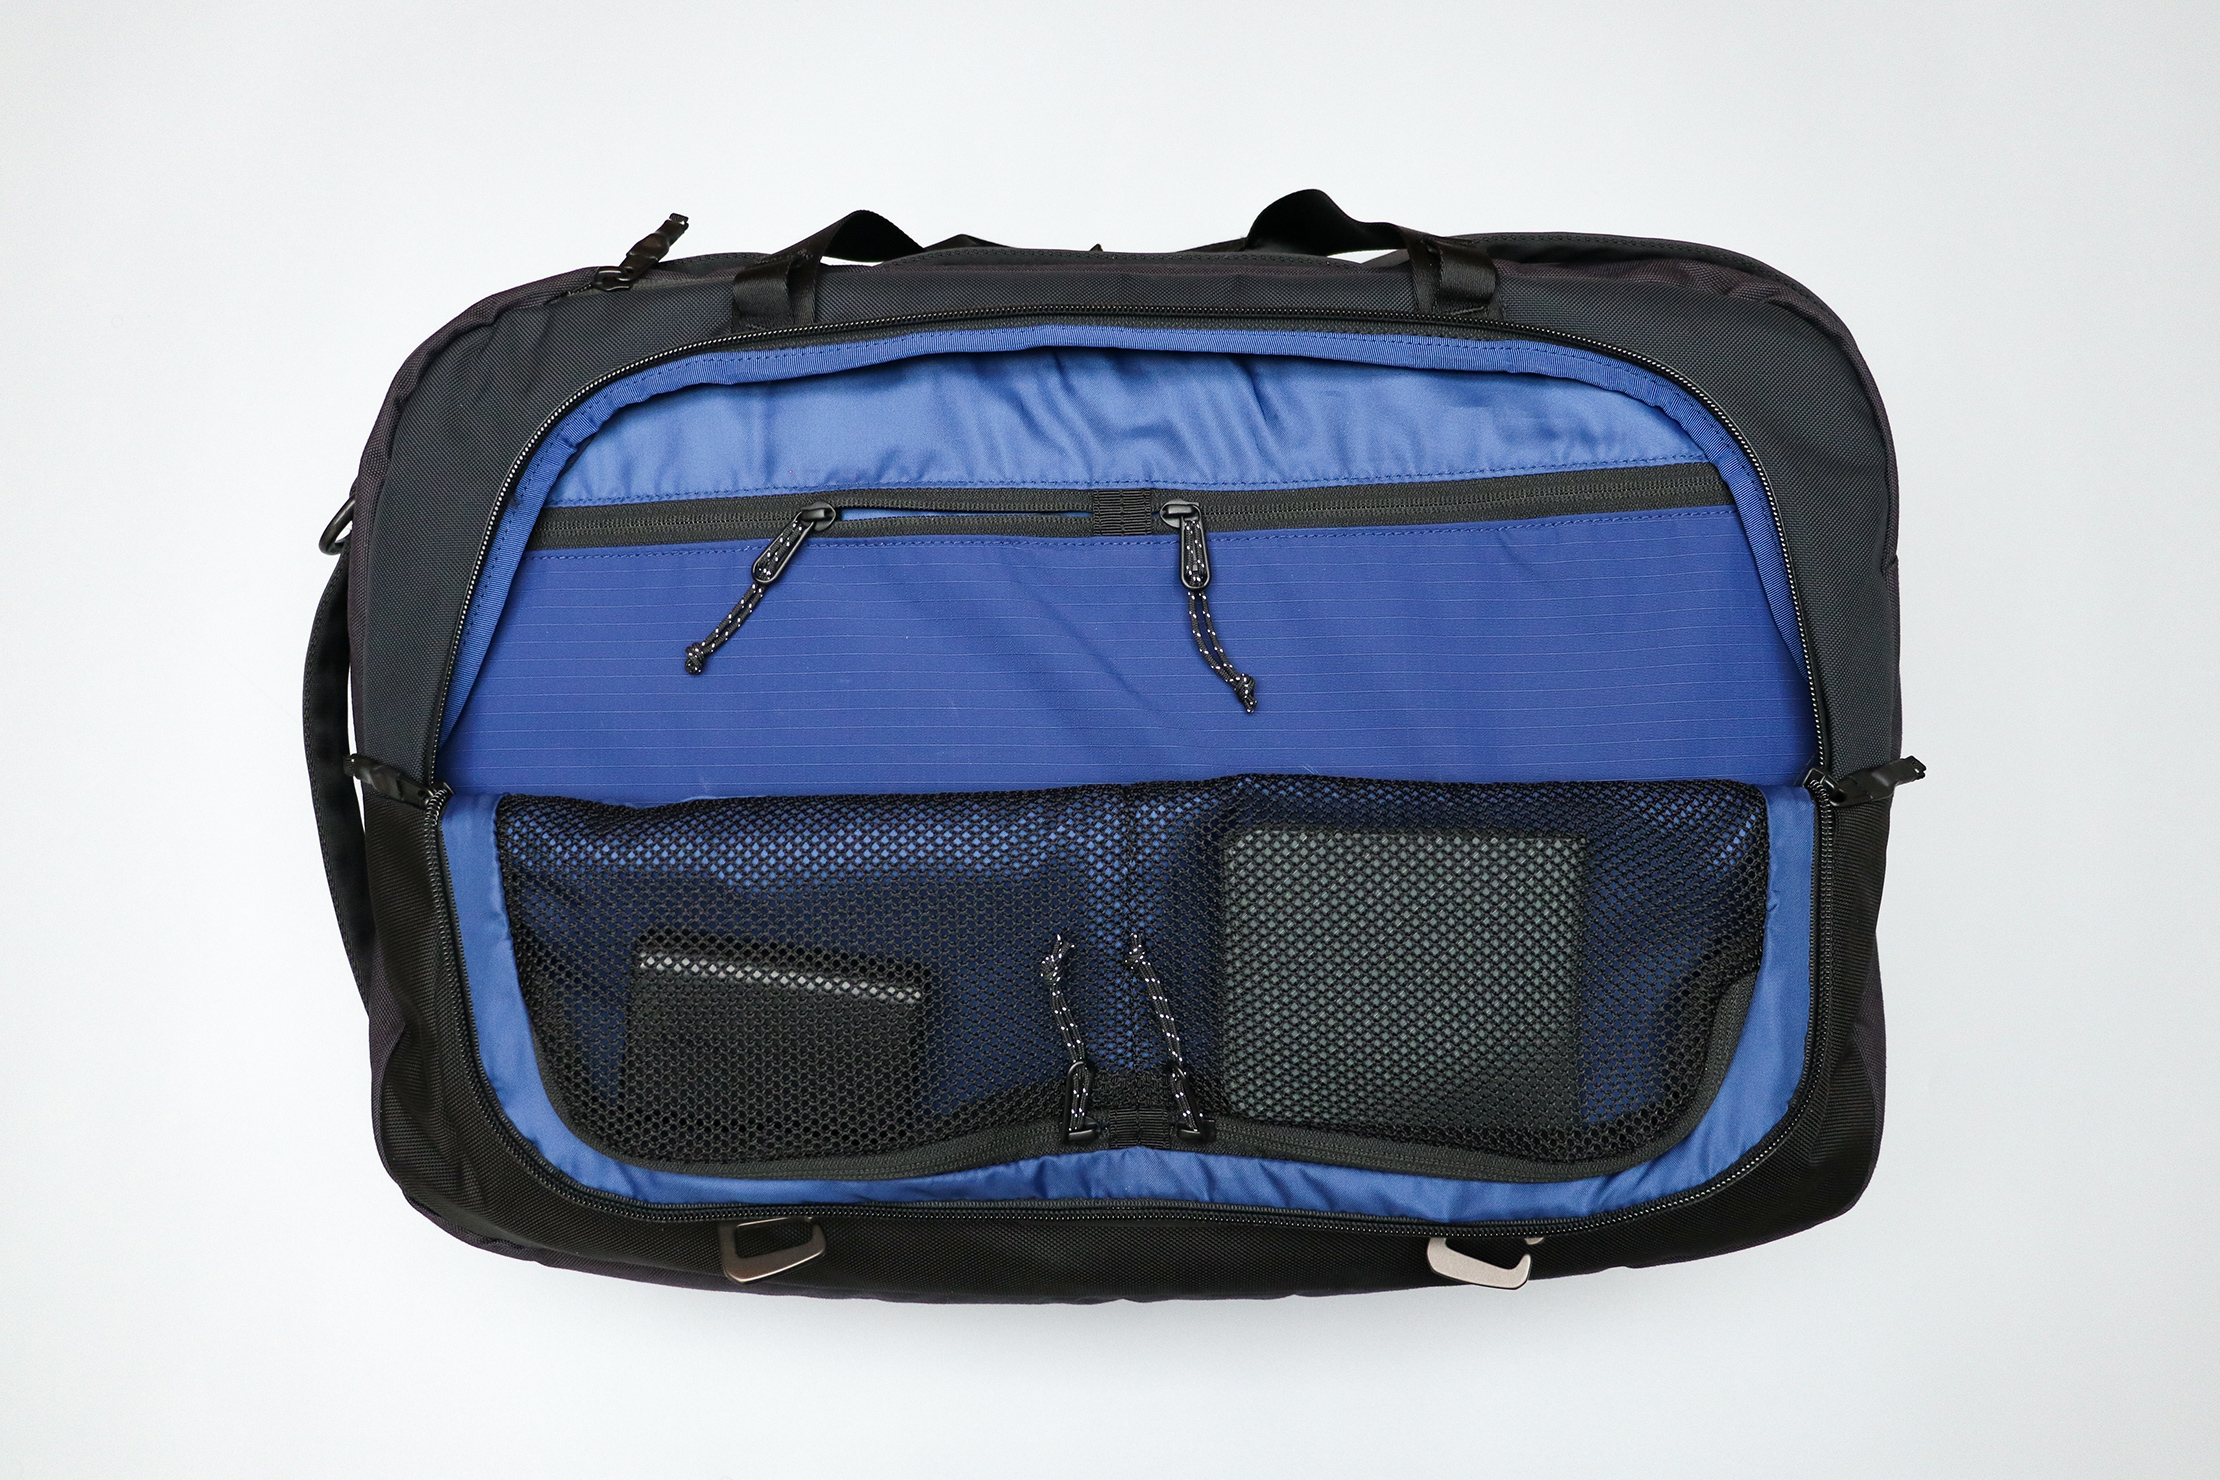 Timbuk2 Never Check Backpack Duffel Front Compartment